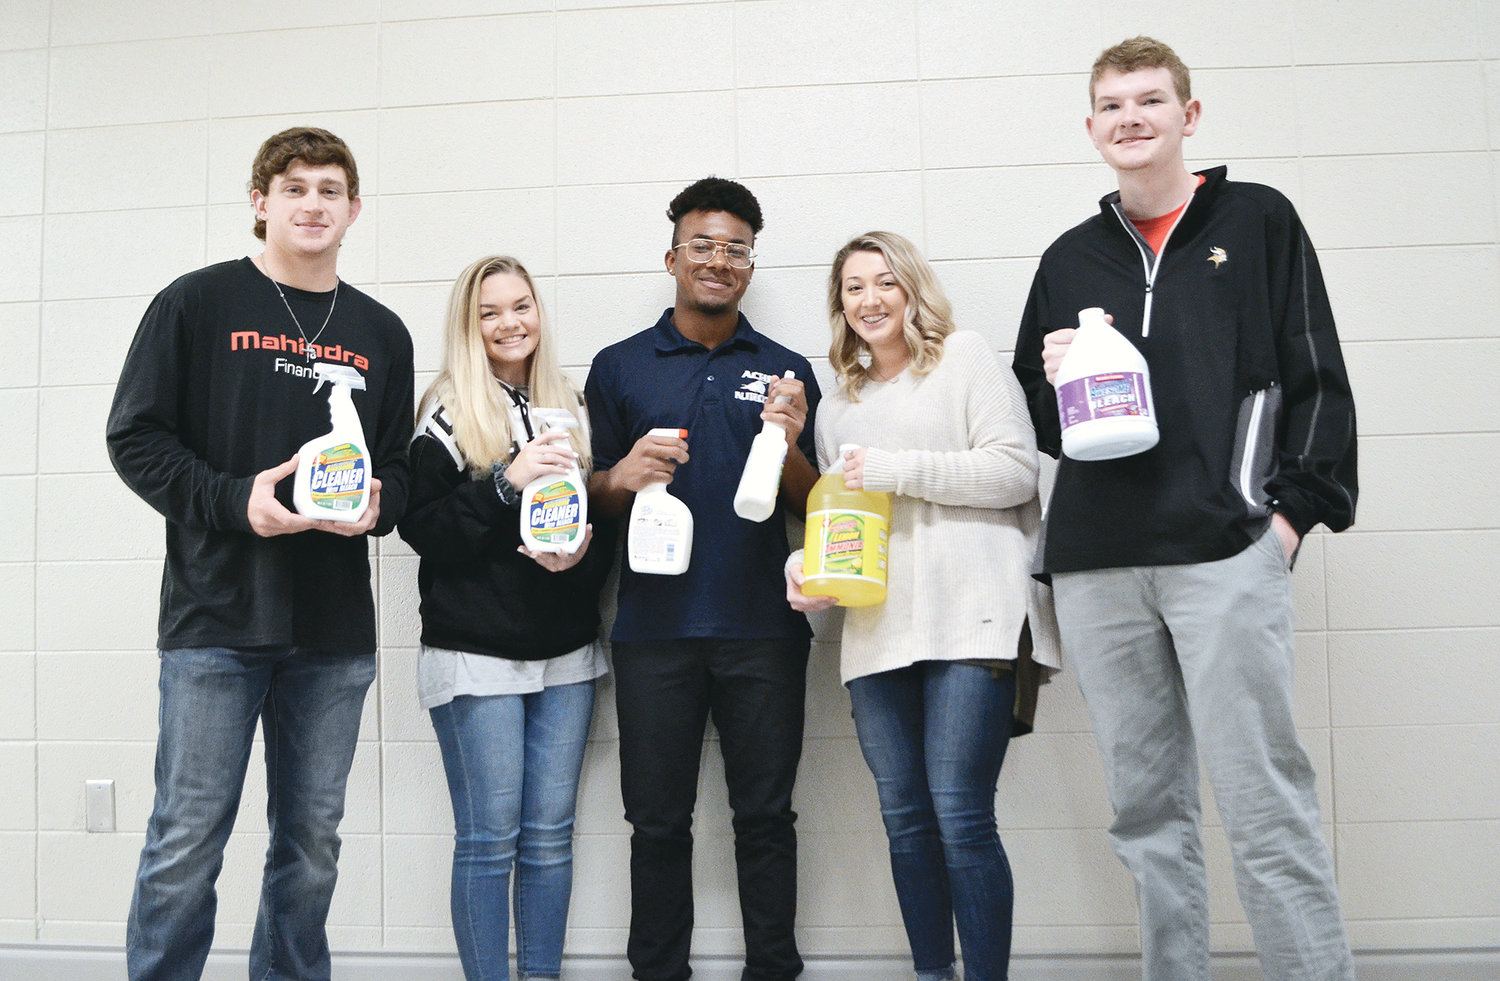 Jasper High School is continuing to collect personal hygiene items and cleaning supplies that will be transported to help tornado victims in Lee County. Donations must be made by tomorrow afternoon by visiting the front office of Jasper High. Pictured are students holding some items that were donated last Friday. From left to right, senior Zac Durham, sophomore Jordan Bolen, senior Ezaa Bell, senior Haley Sickles and junior Grayson Diehl.